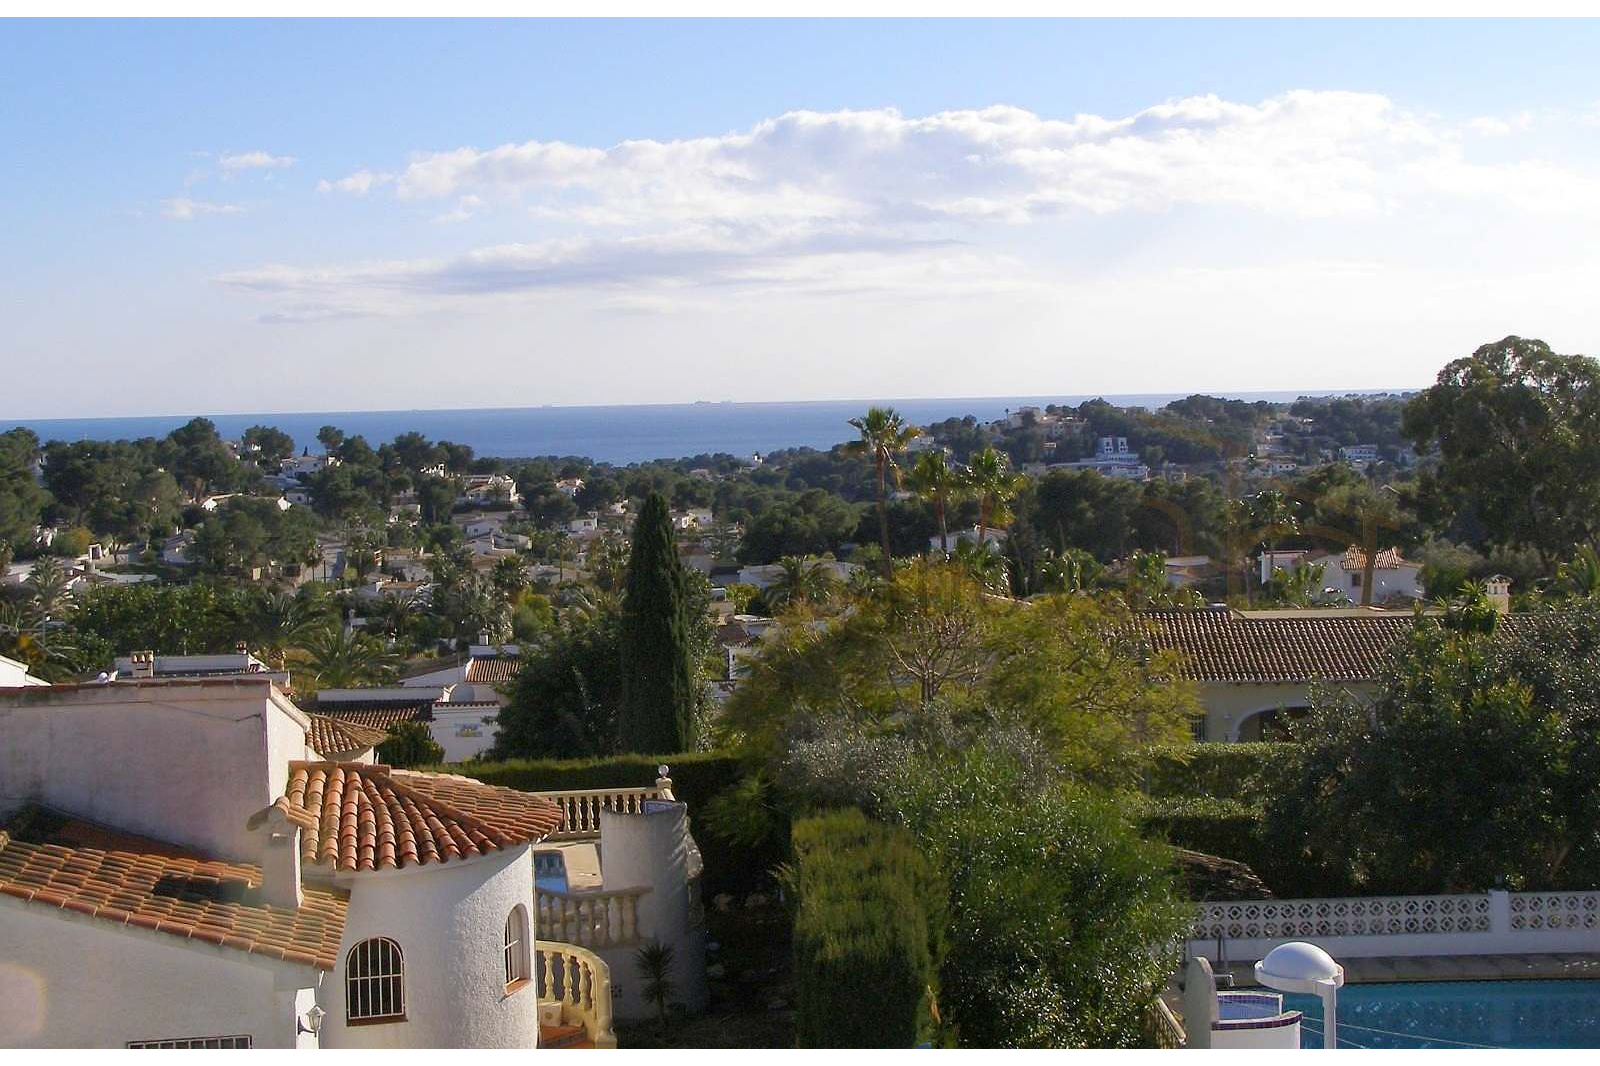 Moraira / Teulada- A contemporary Villa, bright and airy, with openspaces, ideal for modern living pic 7